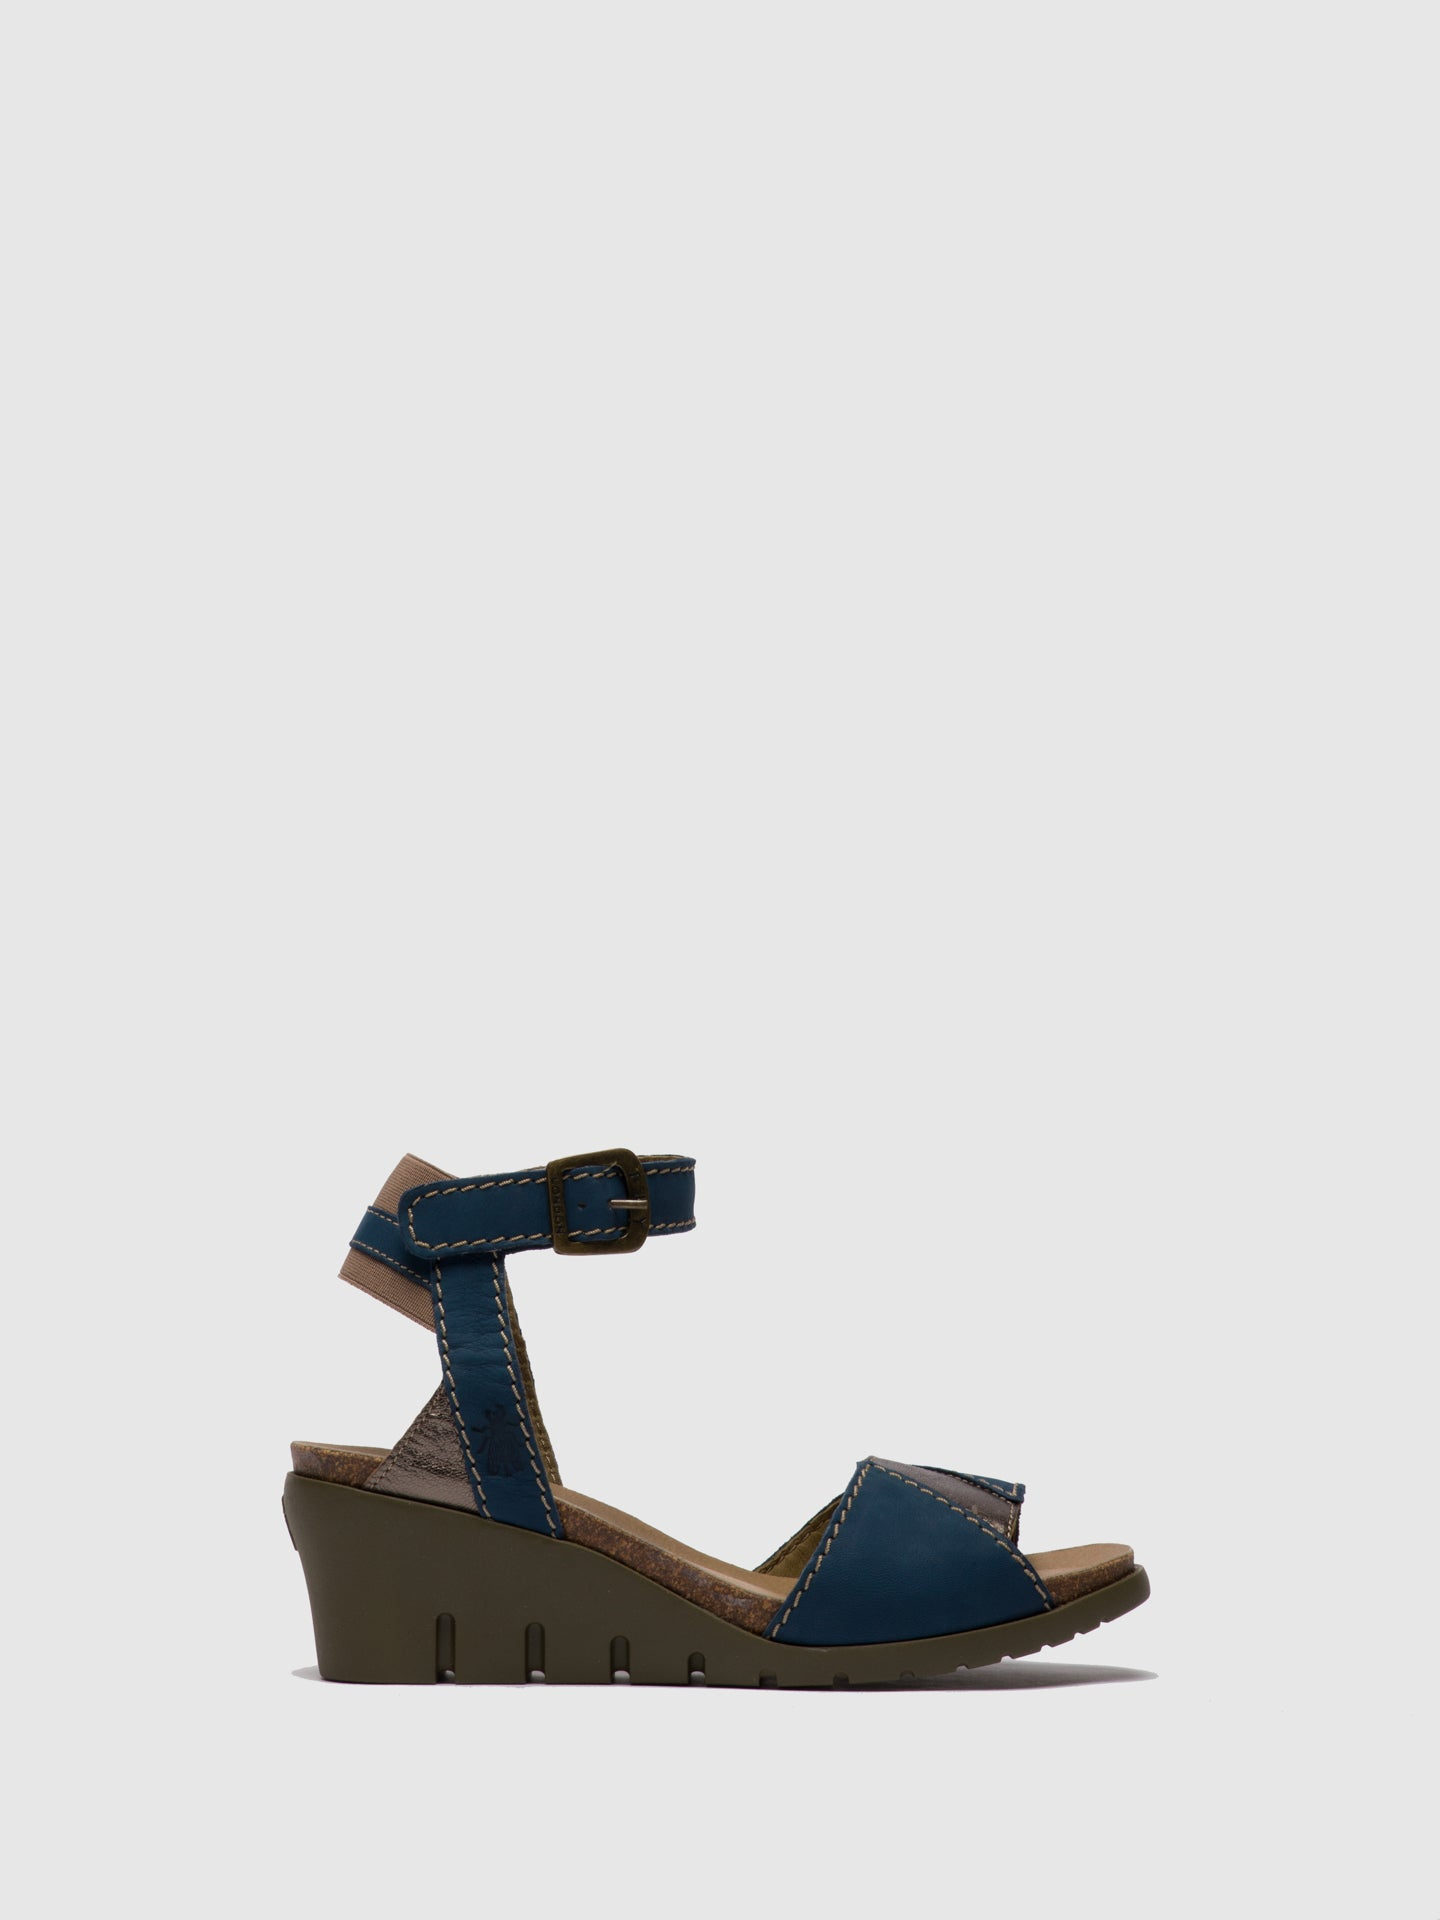 Fly London DarkBlue Ankle Strap Sandals